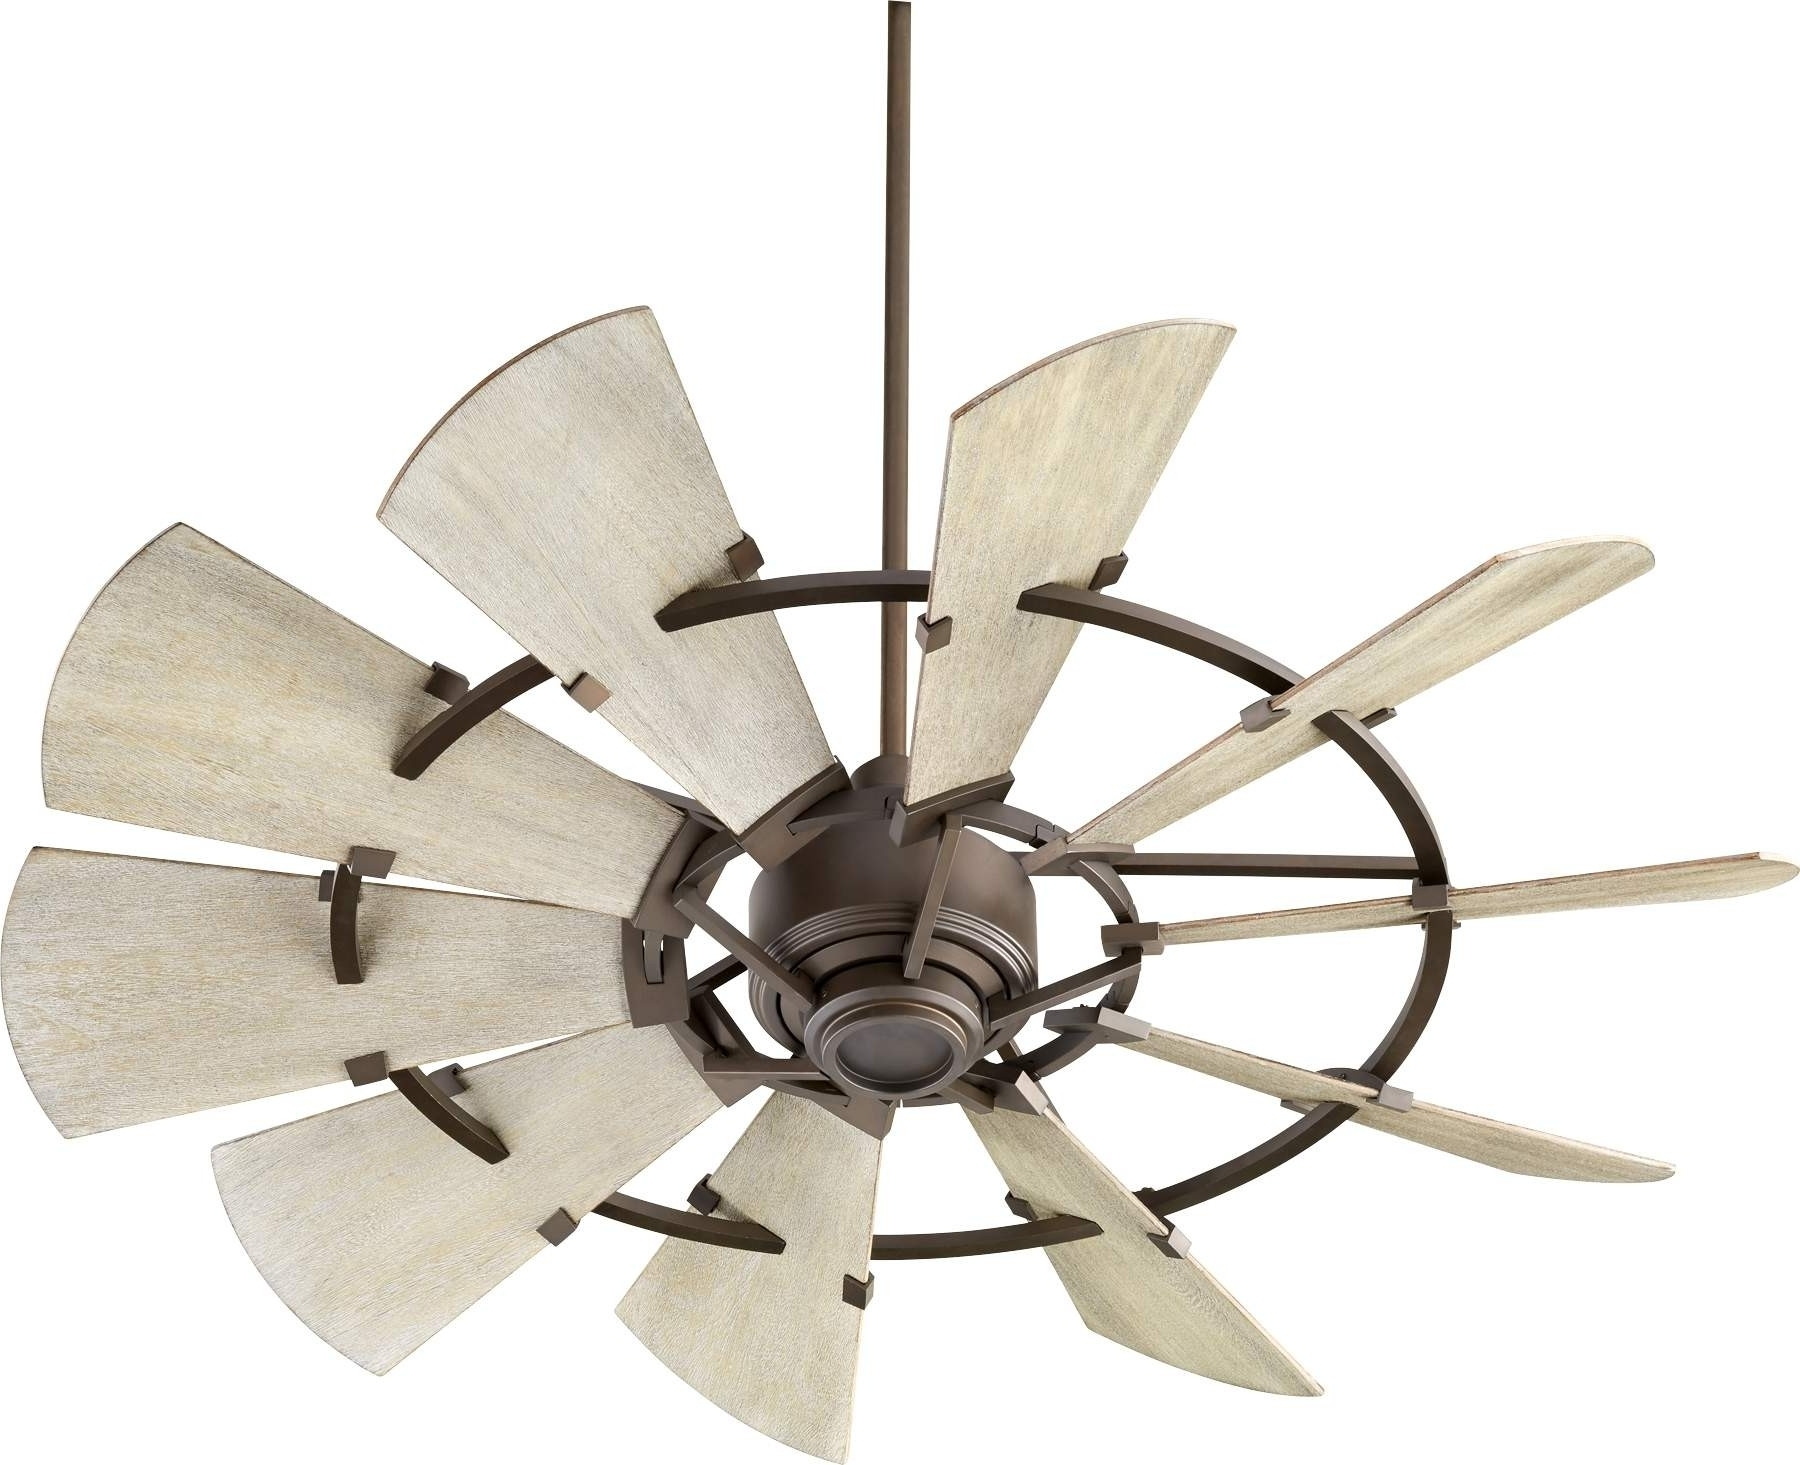 Trendy Quorum Windmill Ceiling Fan Model 195210 86 In Oiled Bronze Throughout Quorum Outdoor Ceiling Fans (View 6 of 20)